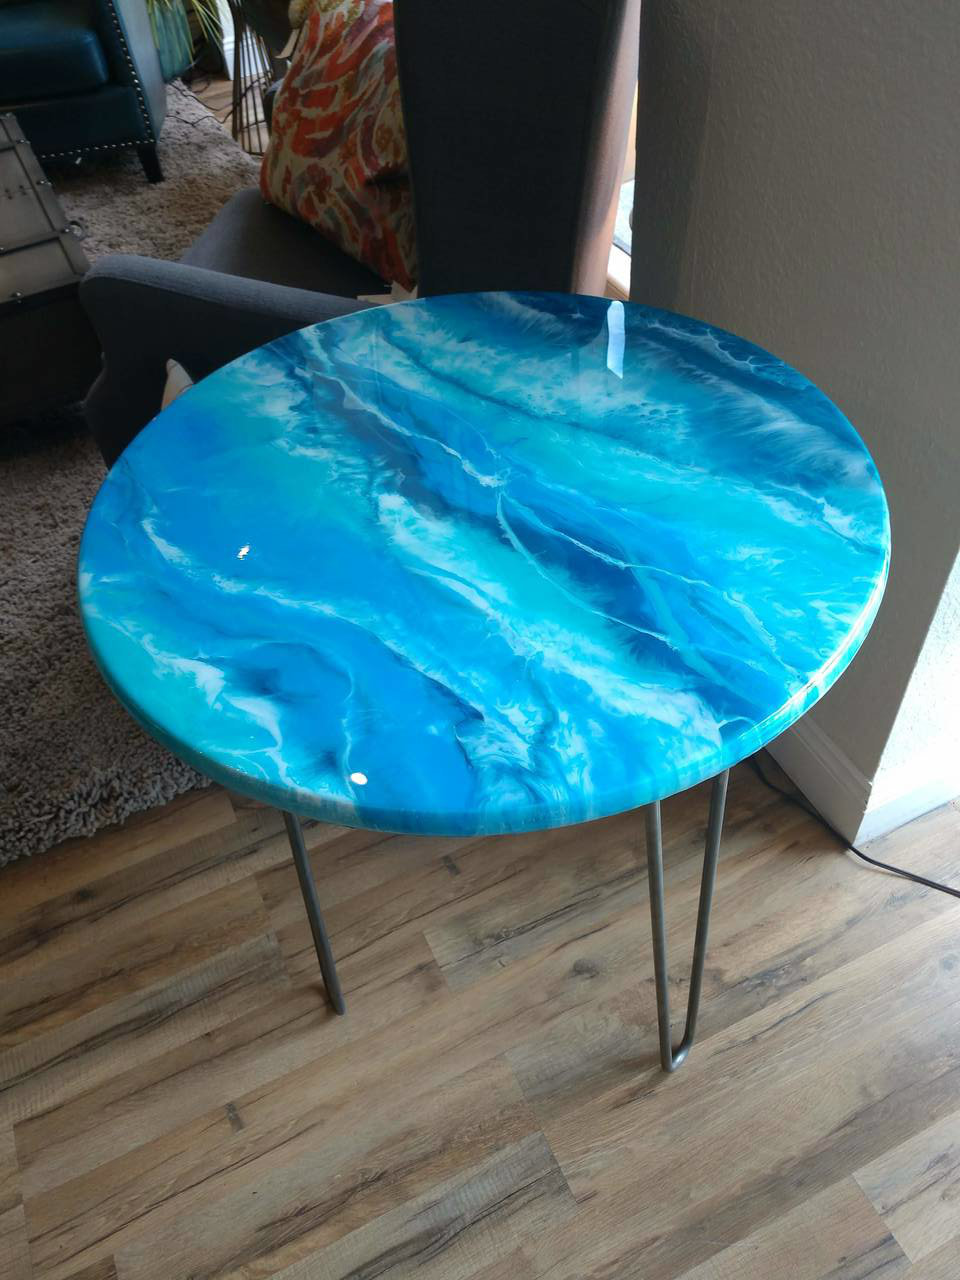 ocean resin accent table tampa bay furnishings img aqua blue wrought iron end tables bright colored coffee threshold transition oval outdoor silver drum side room essentials chair